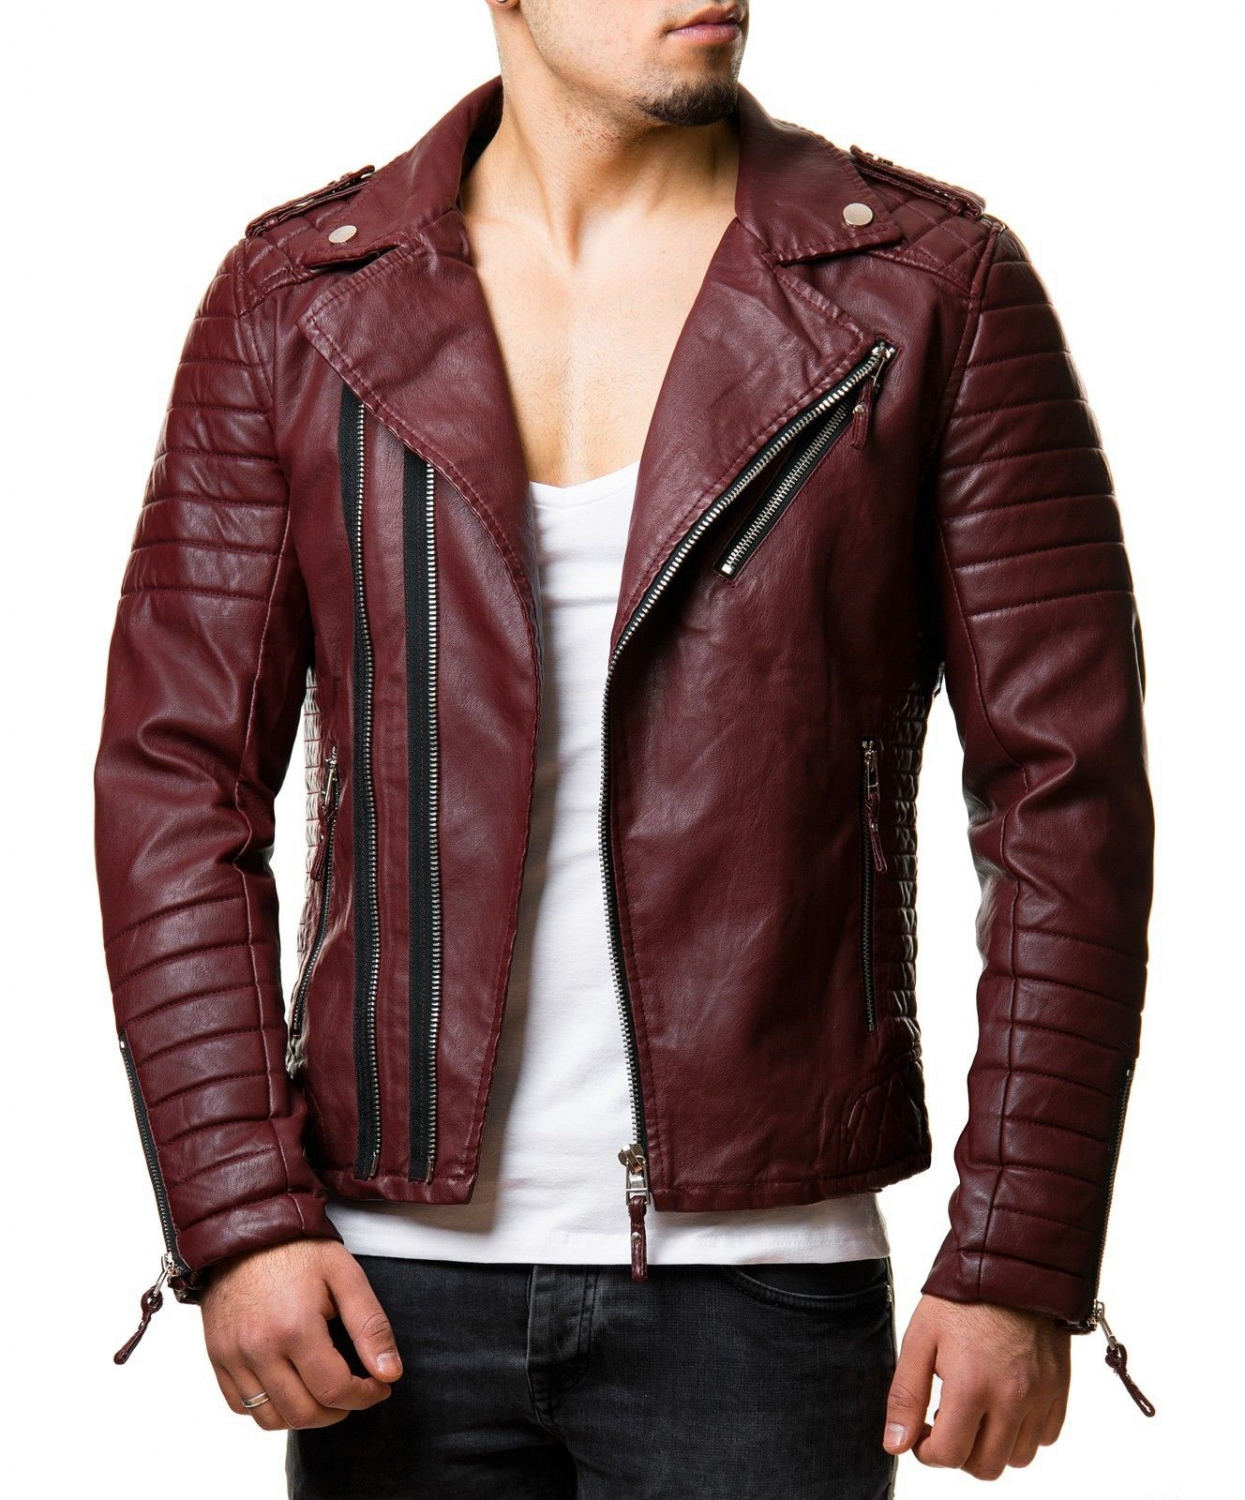 Veste simili cuir marron homme